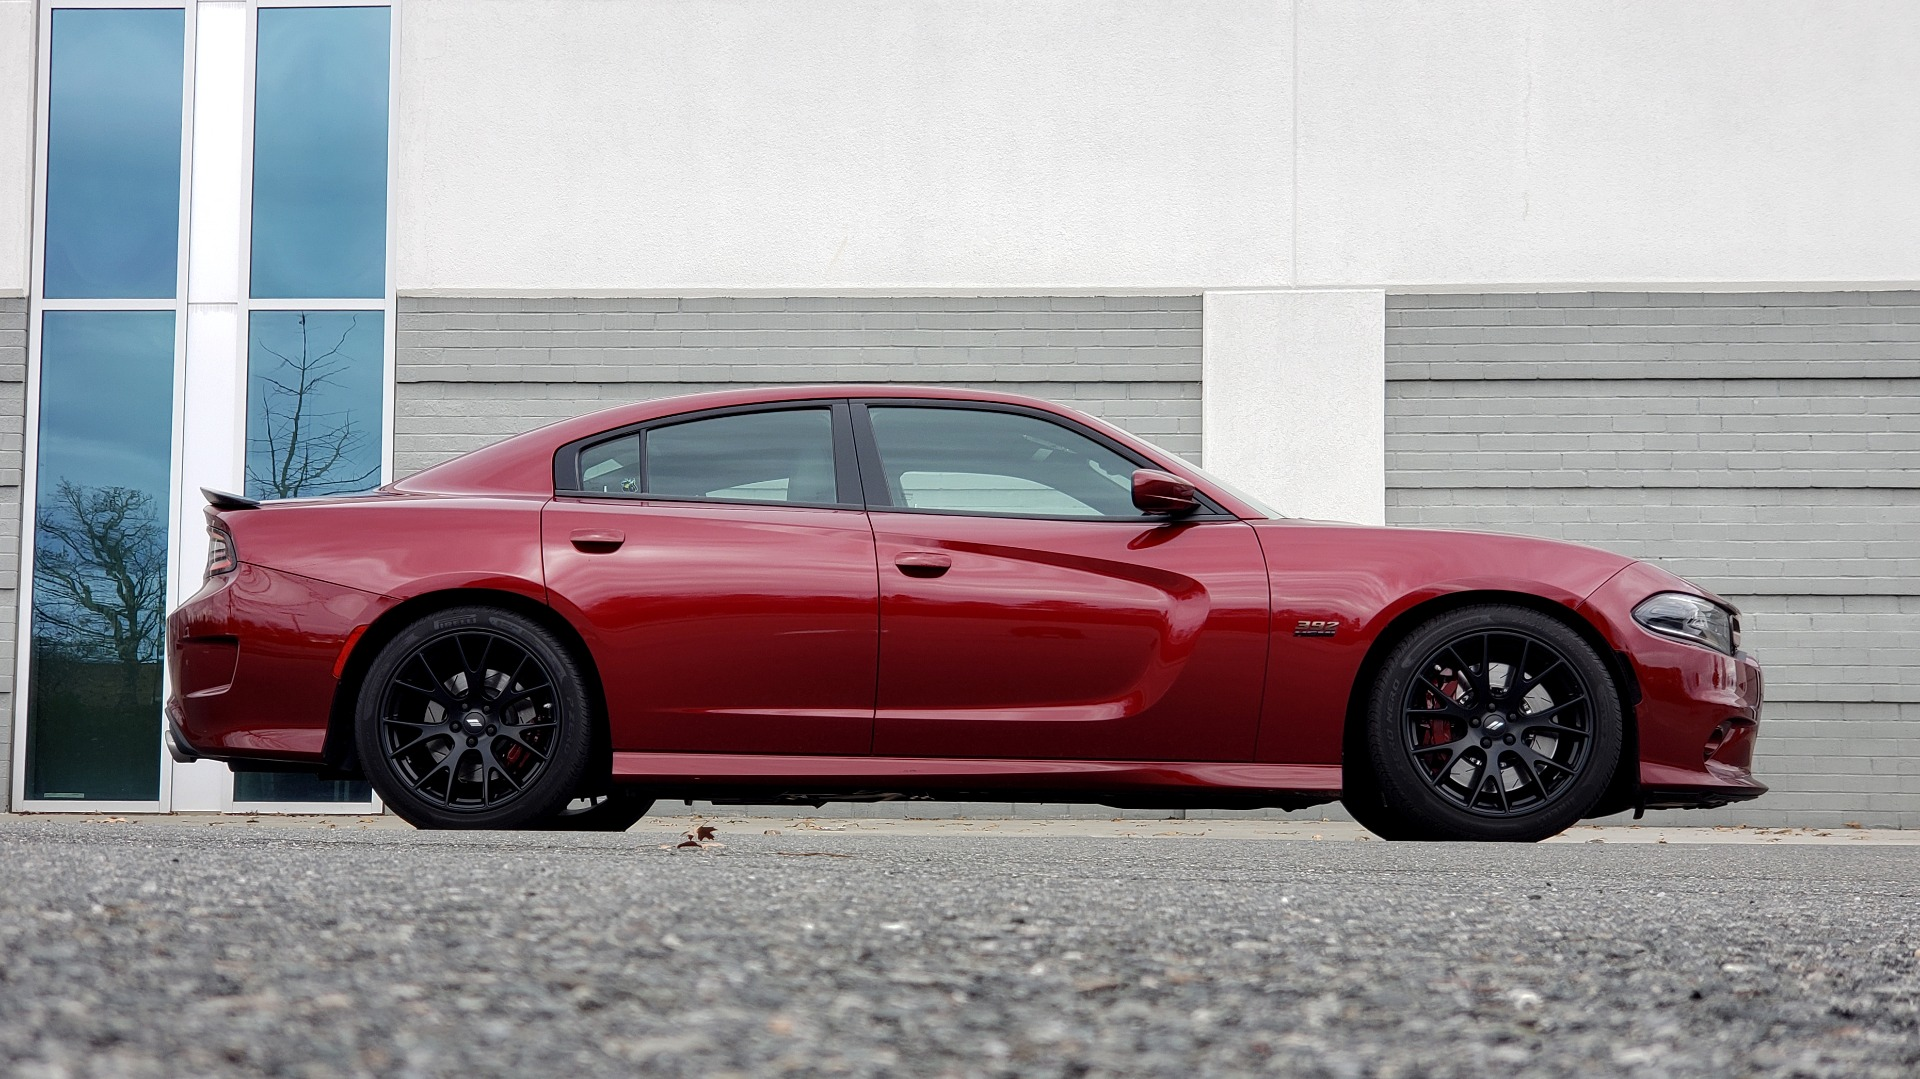 Used 2018 Dodge CHARGER R/T SCAT PACK / 6.4L 485HP / 8-SPD AUTO / HEATED / REARVIEW for sale Sold at Formula Imports in Charlotte NC 28227 6